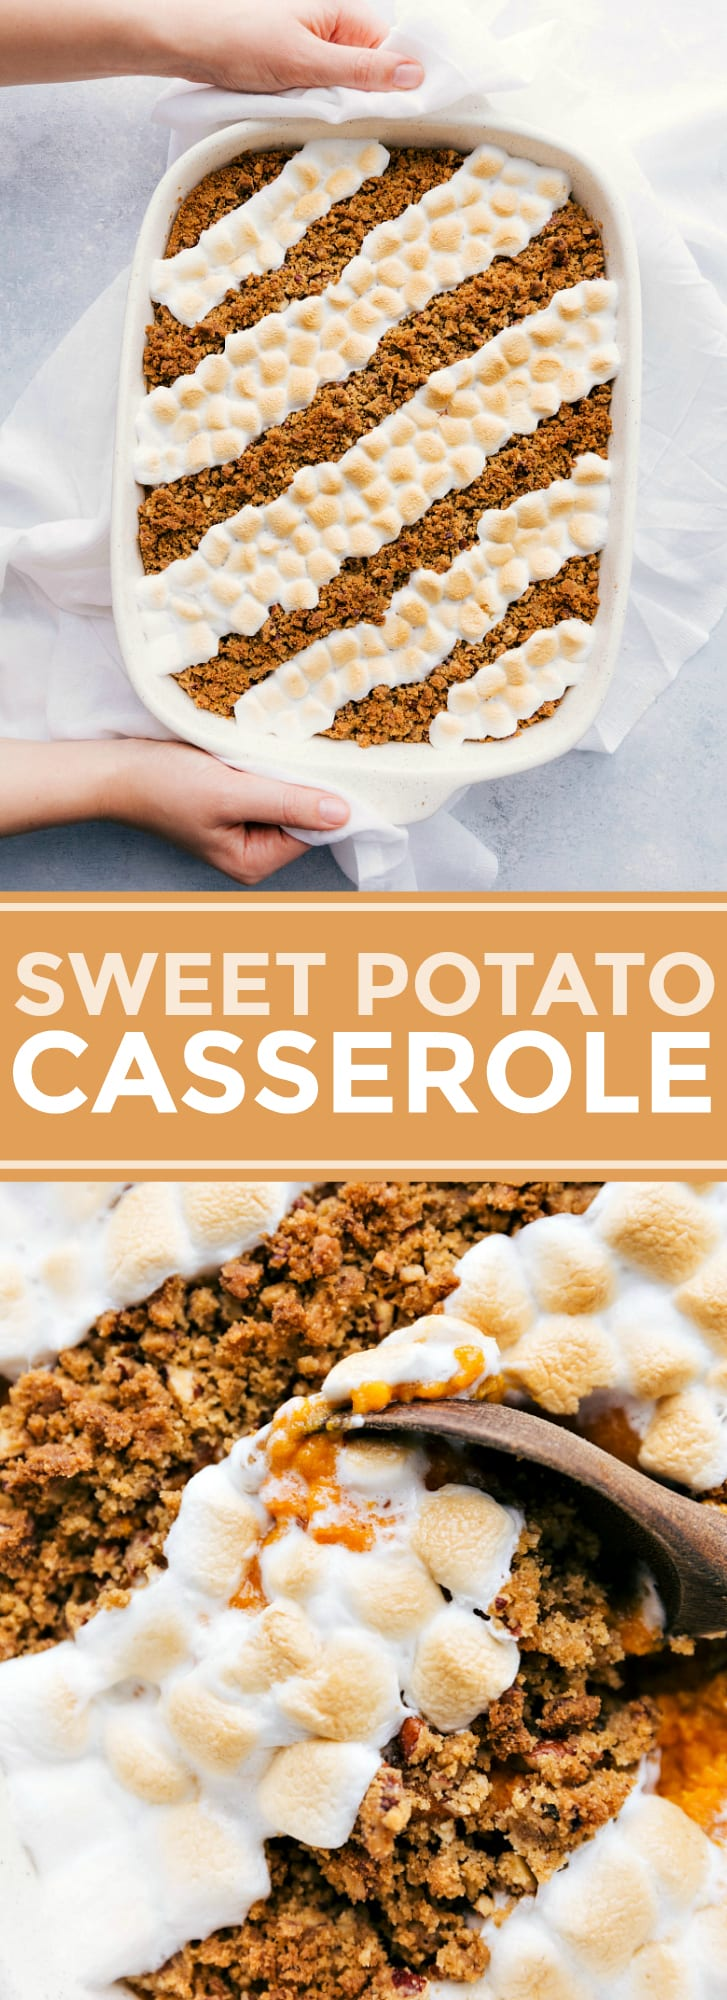 The classic sweet potato casserole with a crunchy brown sugar pecan topping AND melty marshmallows is a must have for the holidays. via chelseasmessyapron.com #sweet #potato #casserole #holidays #dinner #side #dish #marshmallow #pecan #topping #best #easy